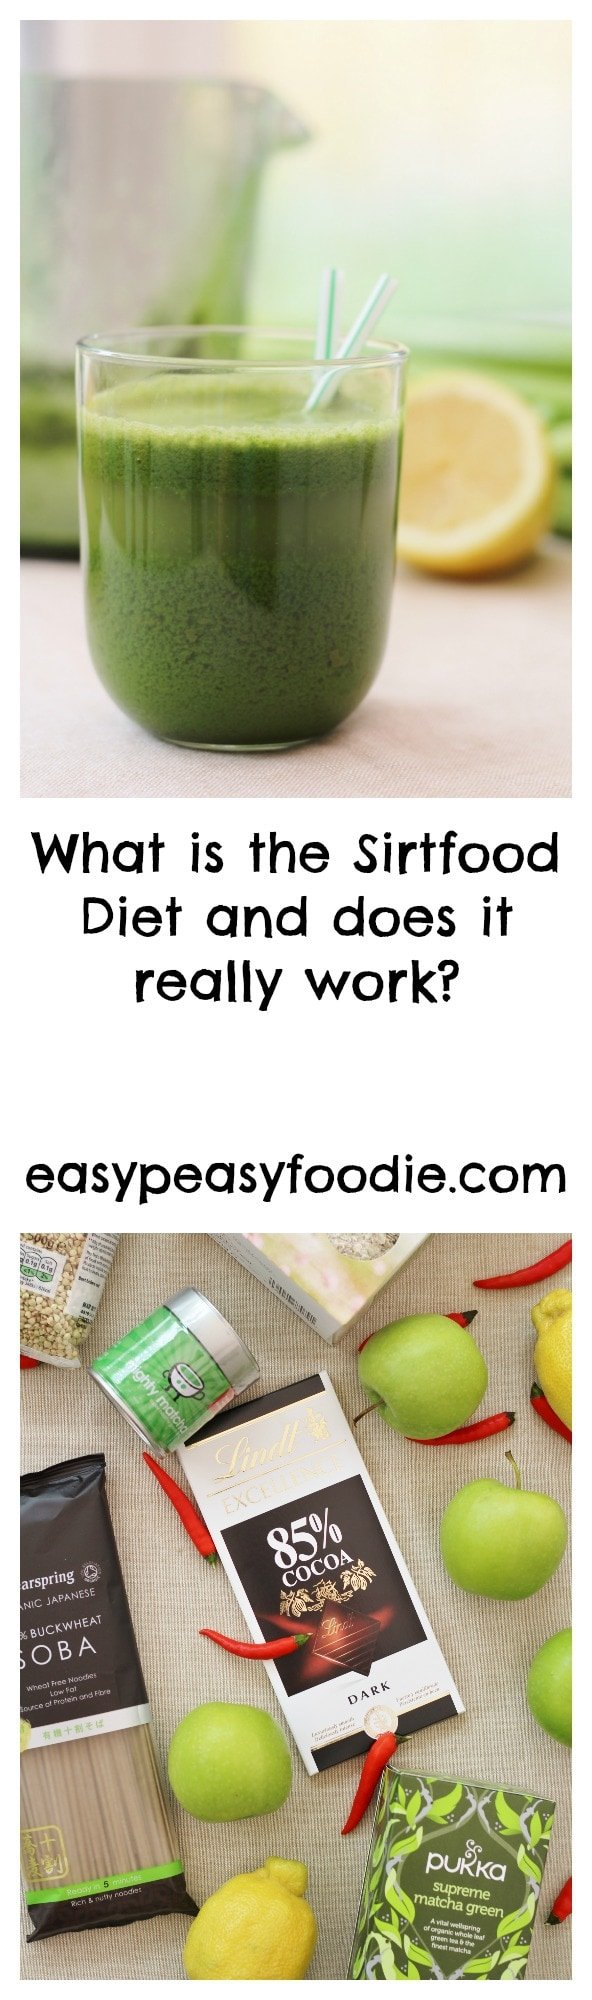 What is the Sirtfood Diet and does it really work? Part 1 - pinnable image with text for Pinterest